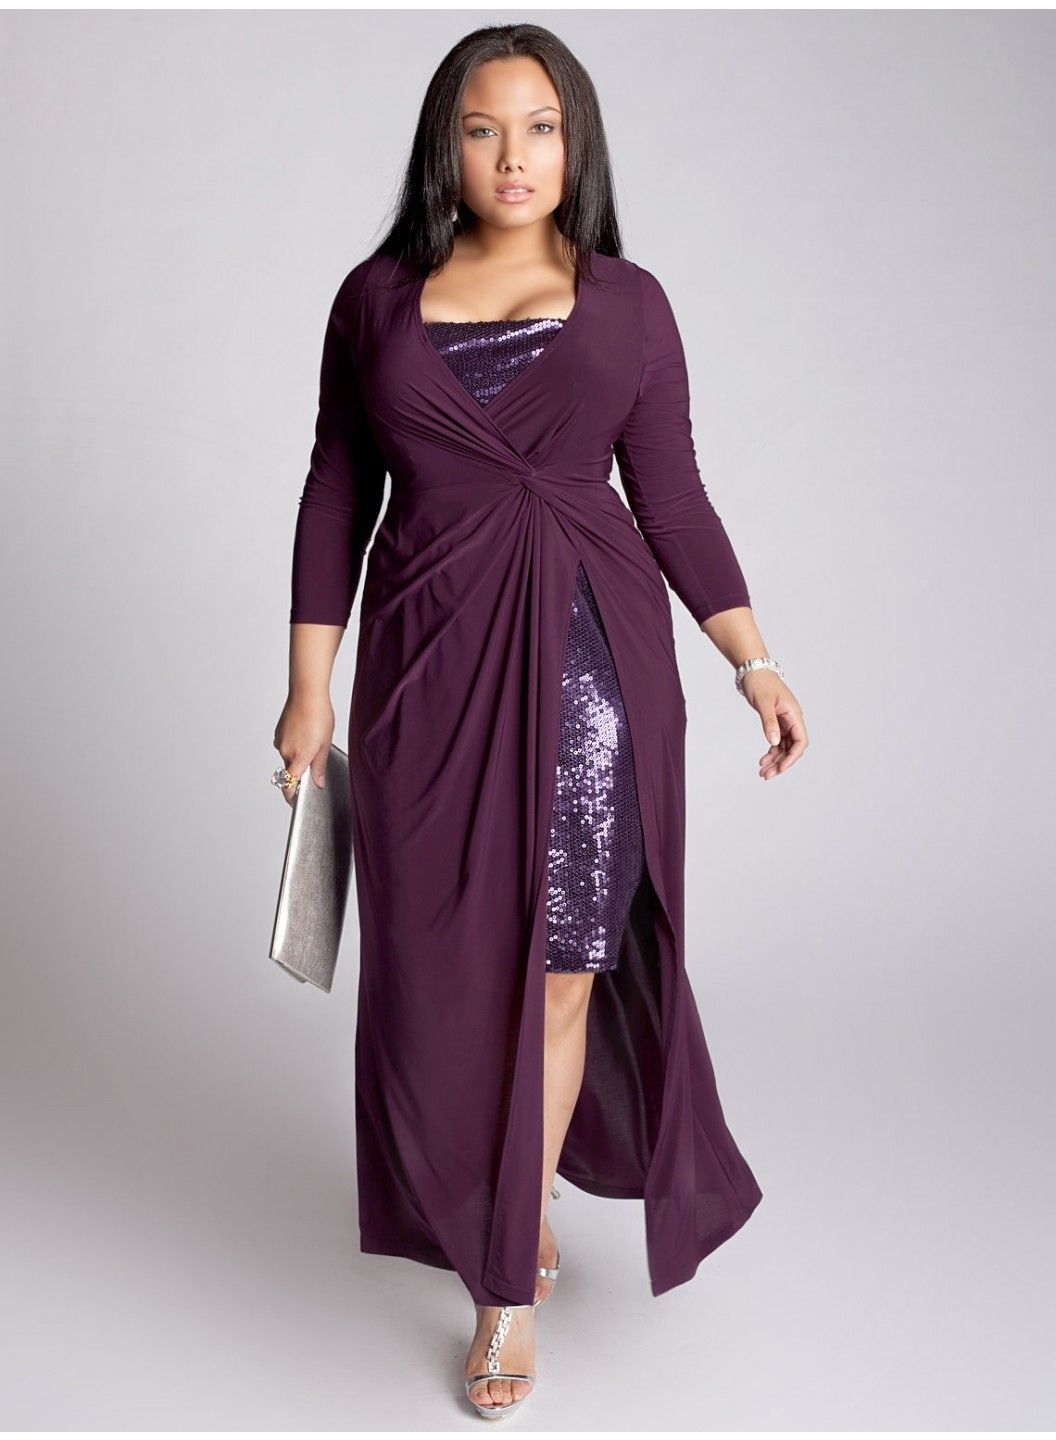 Dawn Blair Michelle Gown in Plum, thought this would look amazing on ...